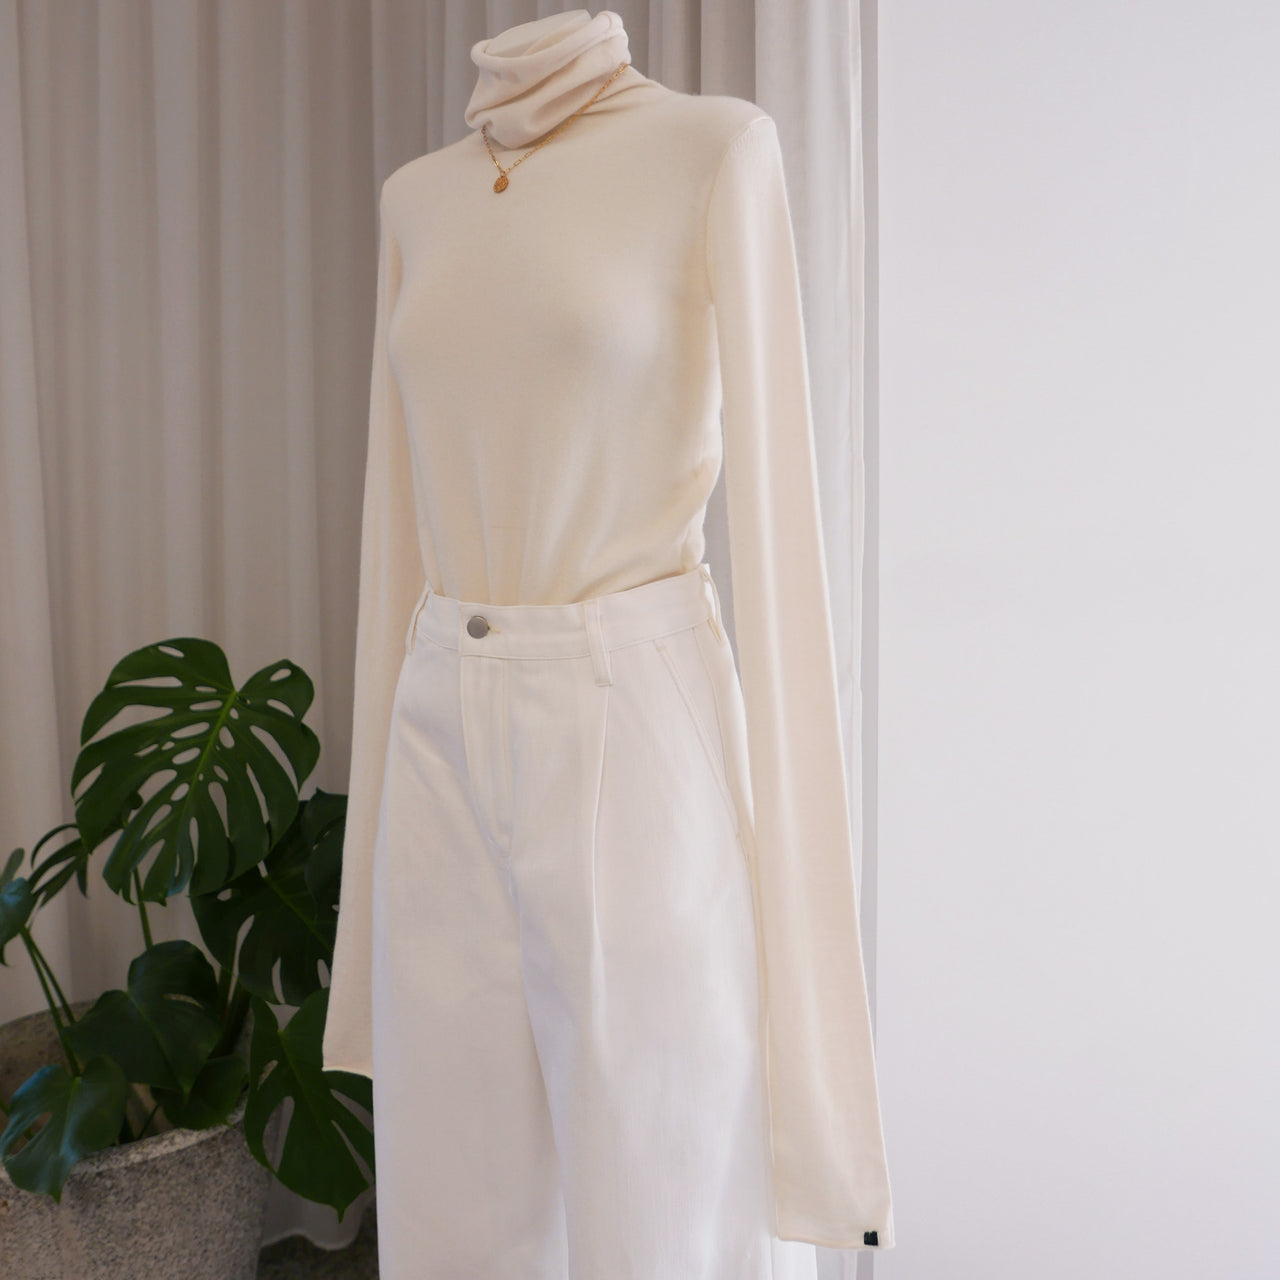 Under Ultrafine Cashmere Top in Cream